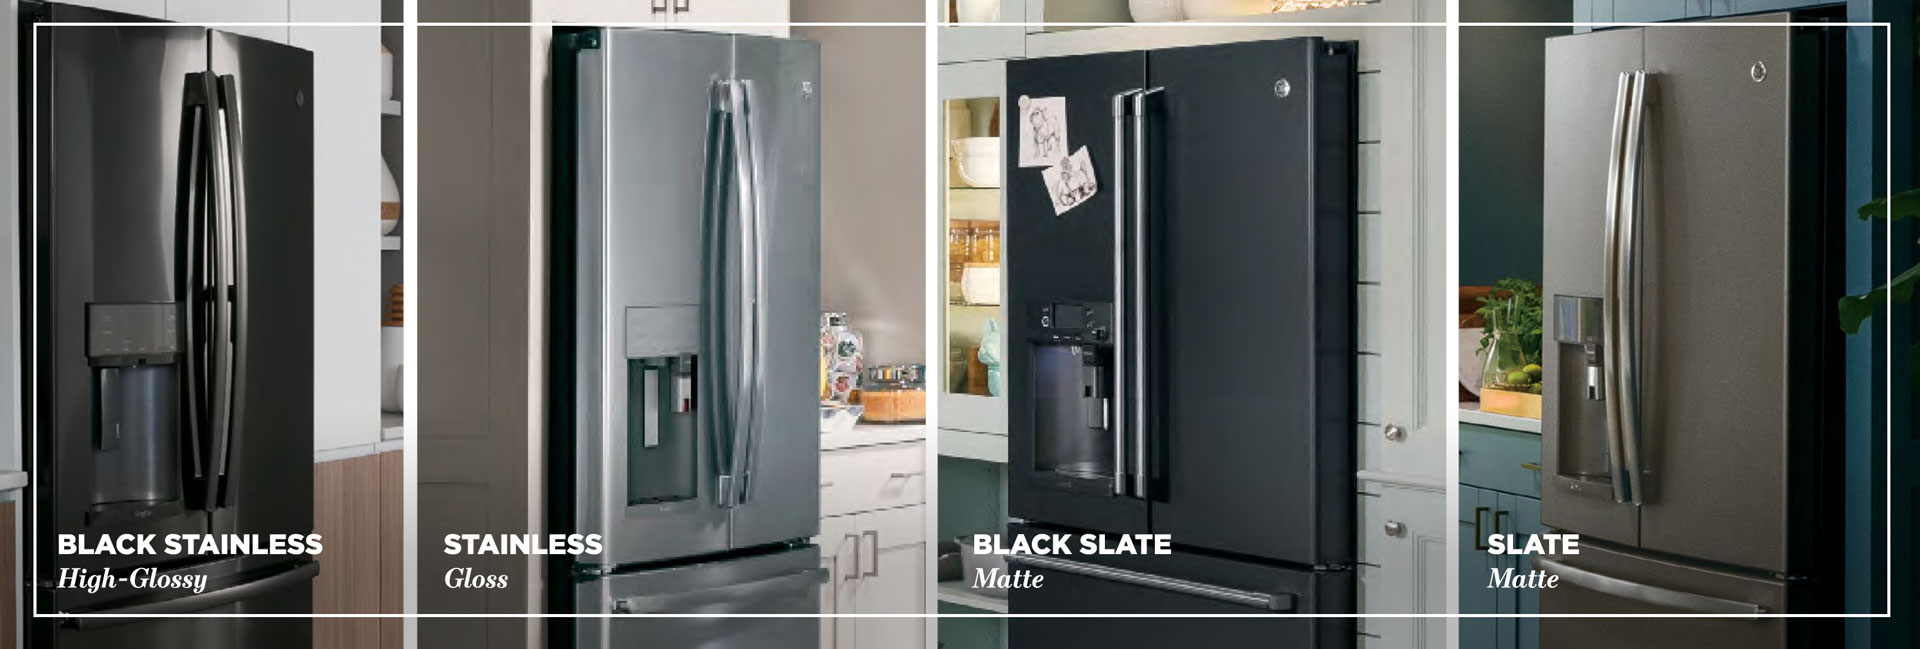 GE Trend-Setting Premium Appliance Finishes